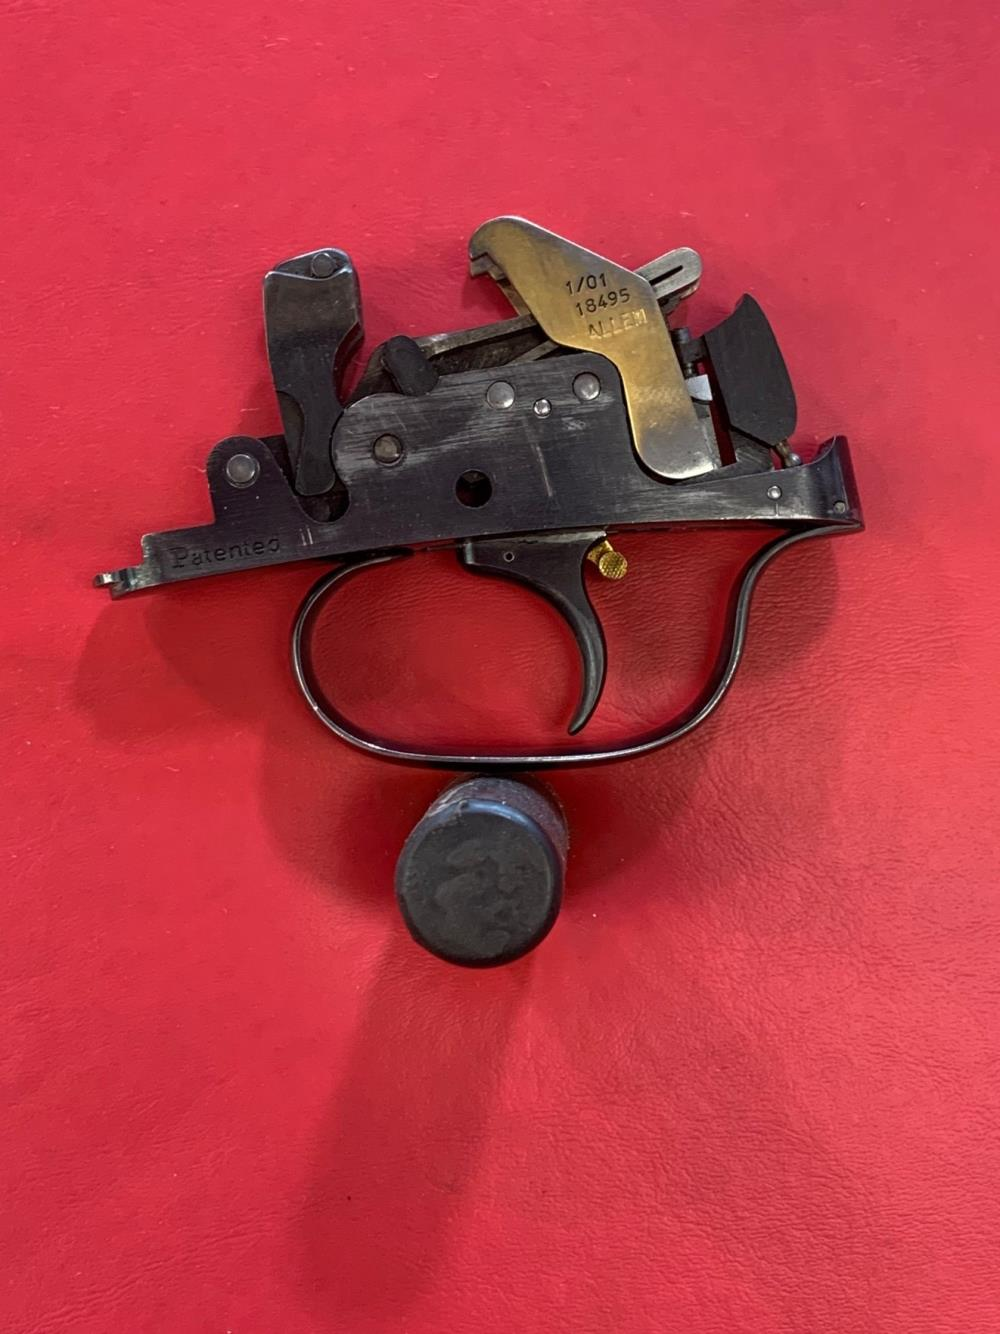 PERAZZI ADJUSTABLE TRIGGER GROUP WITH ALLEMS DOUBLE RELEASES - Pre-Owned